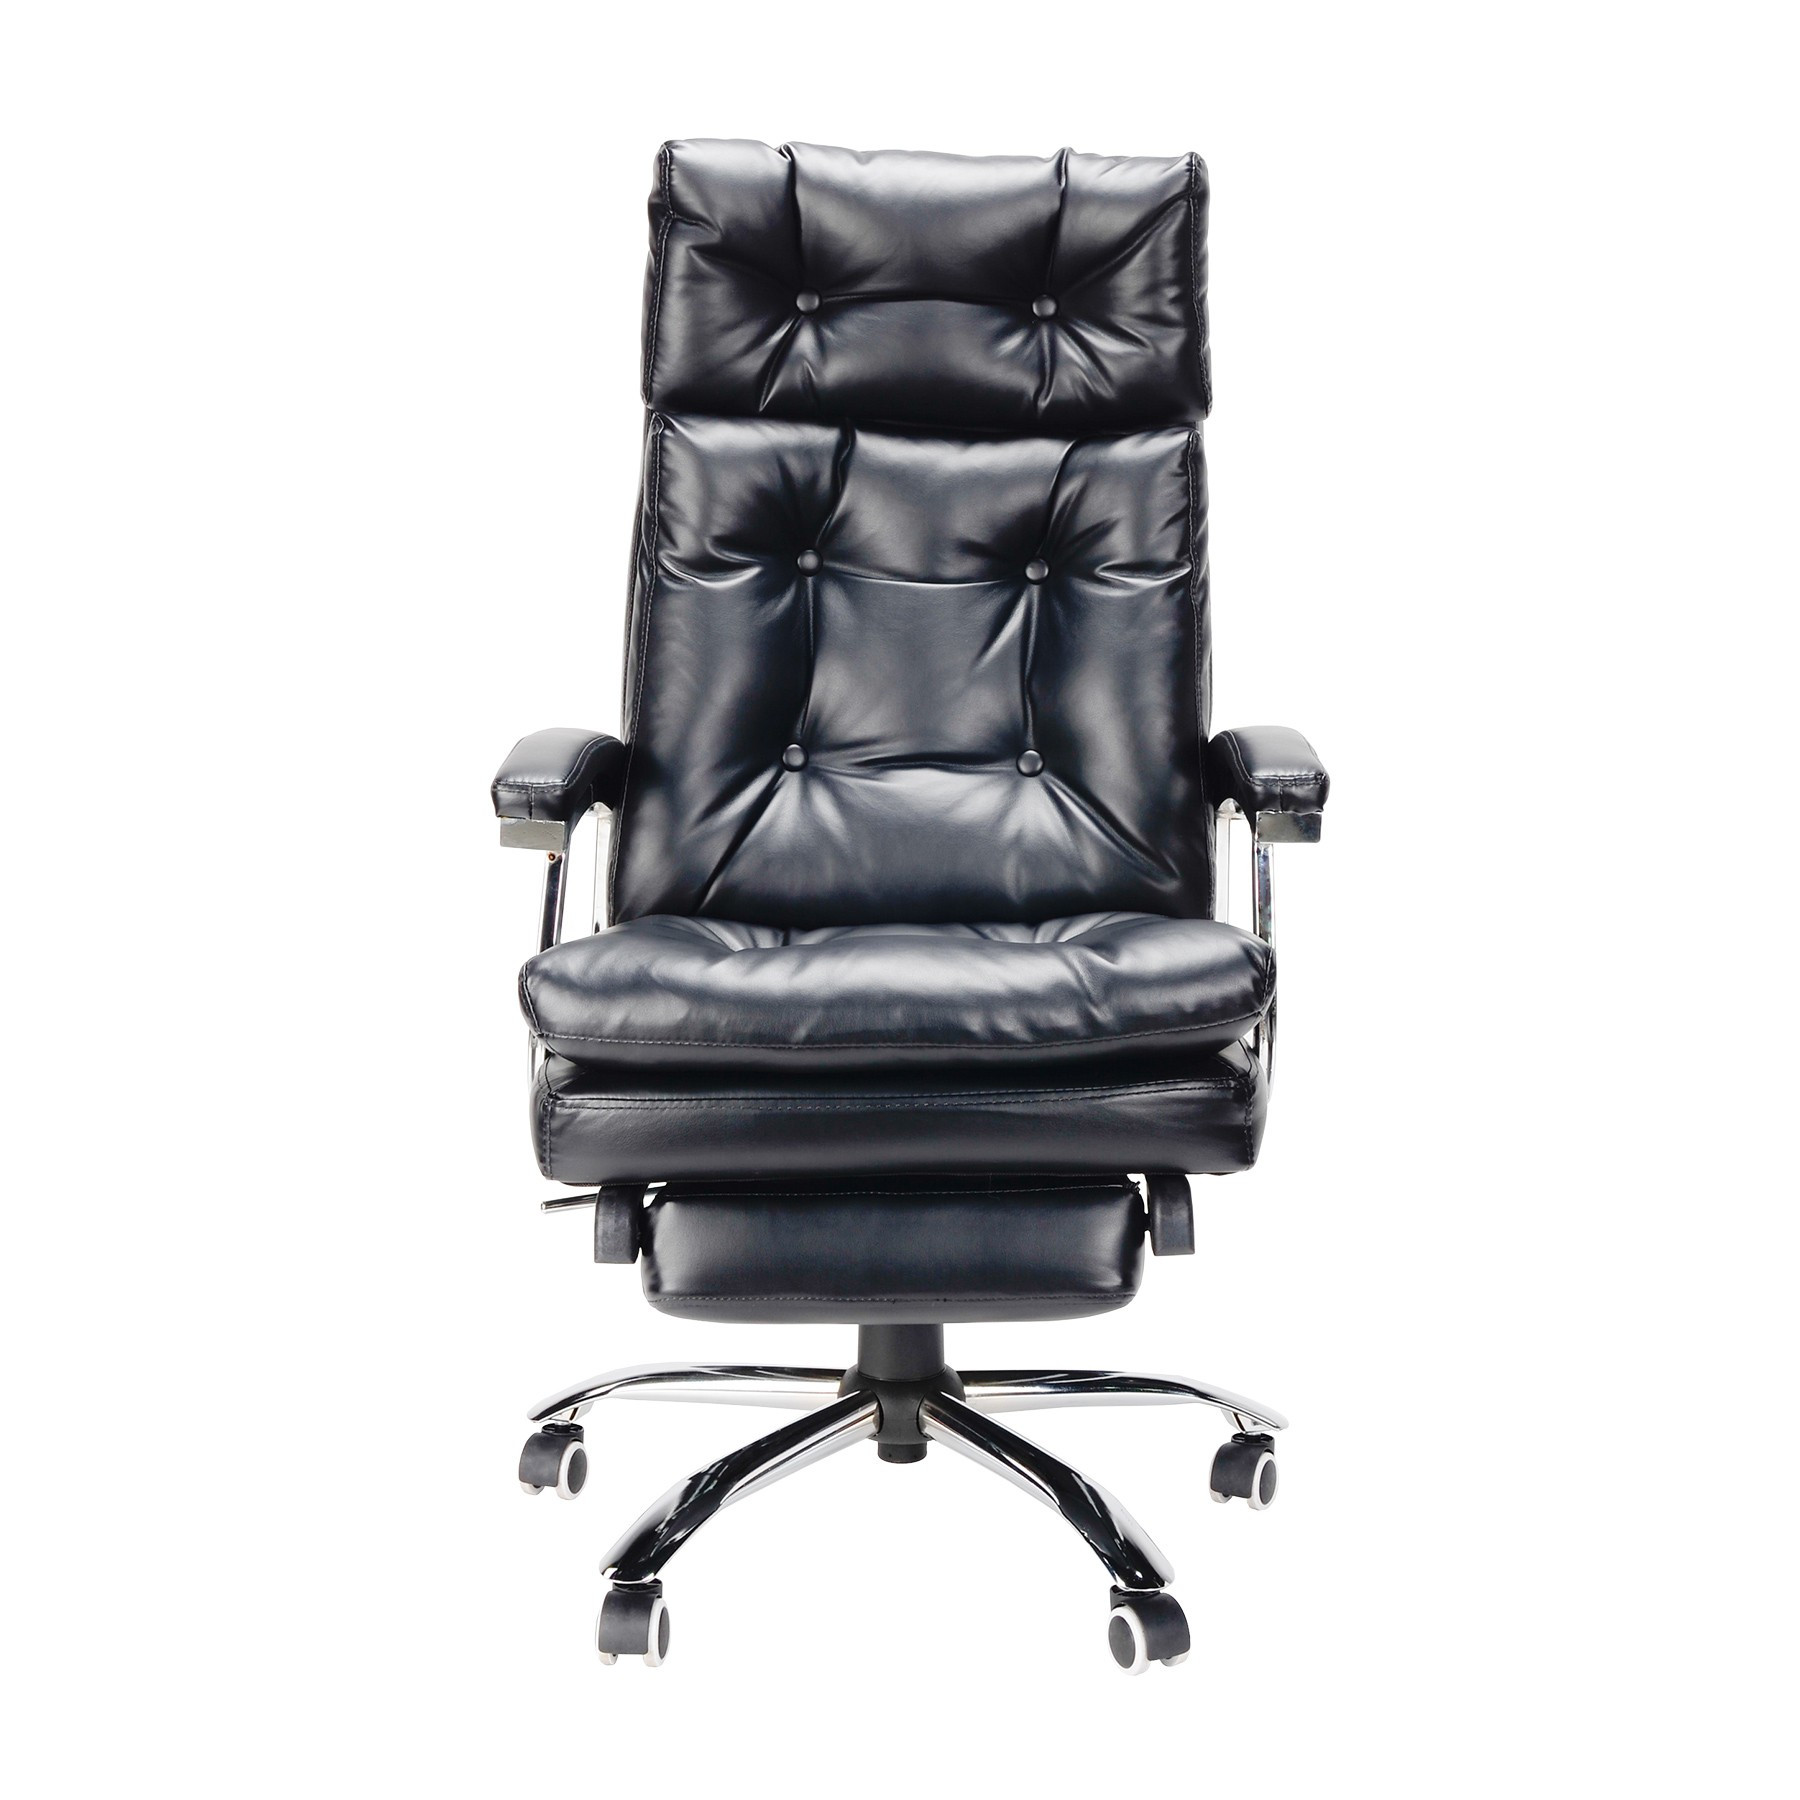 Best ideas about Reclining Office Chair With Footrest . Save or Pin Furniture Best Reclining fice Chair With Footrest Now.